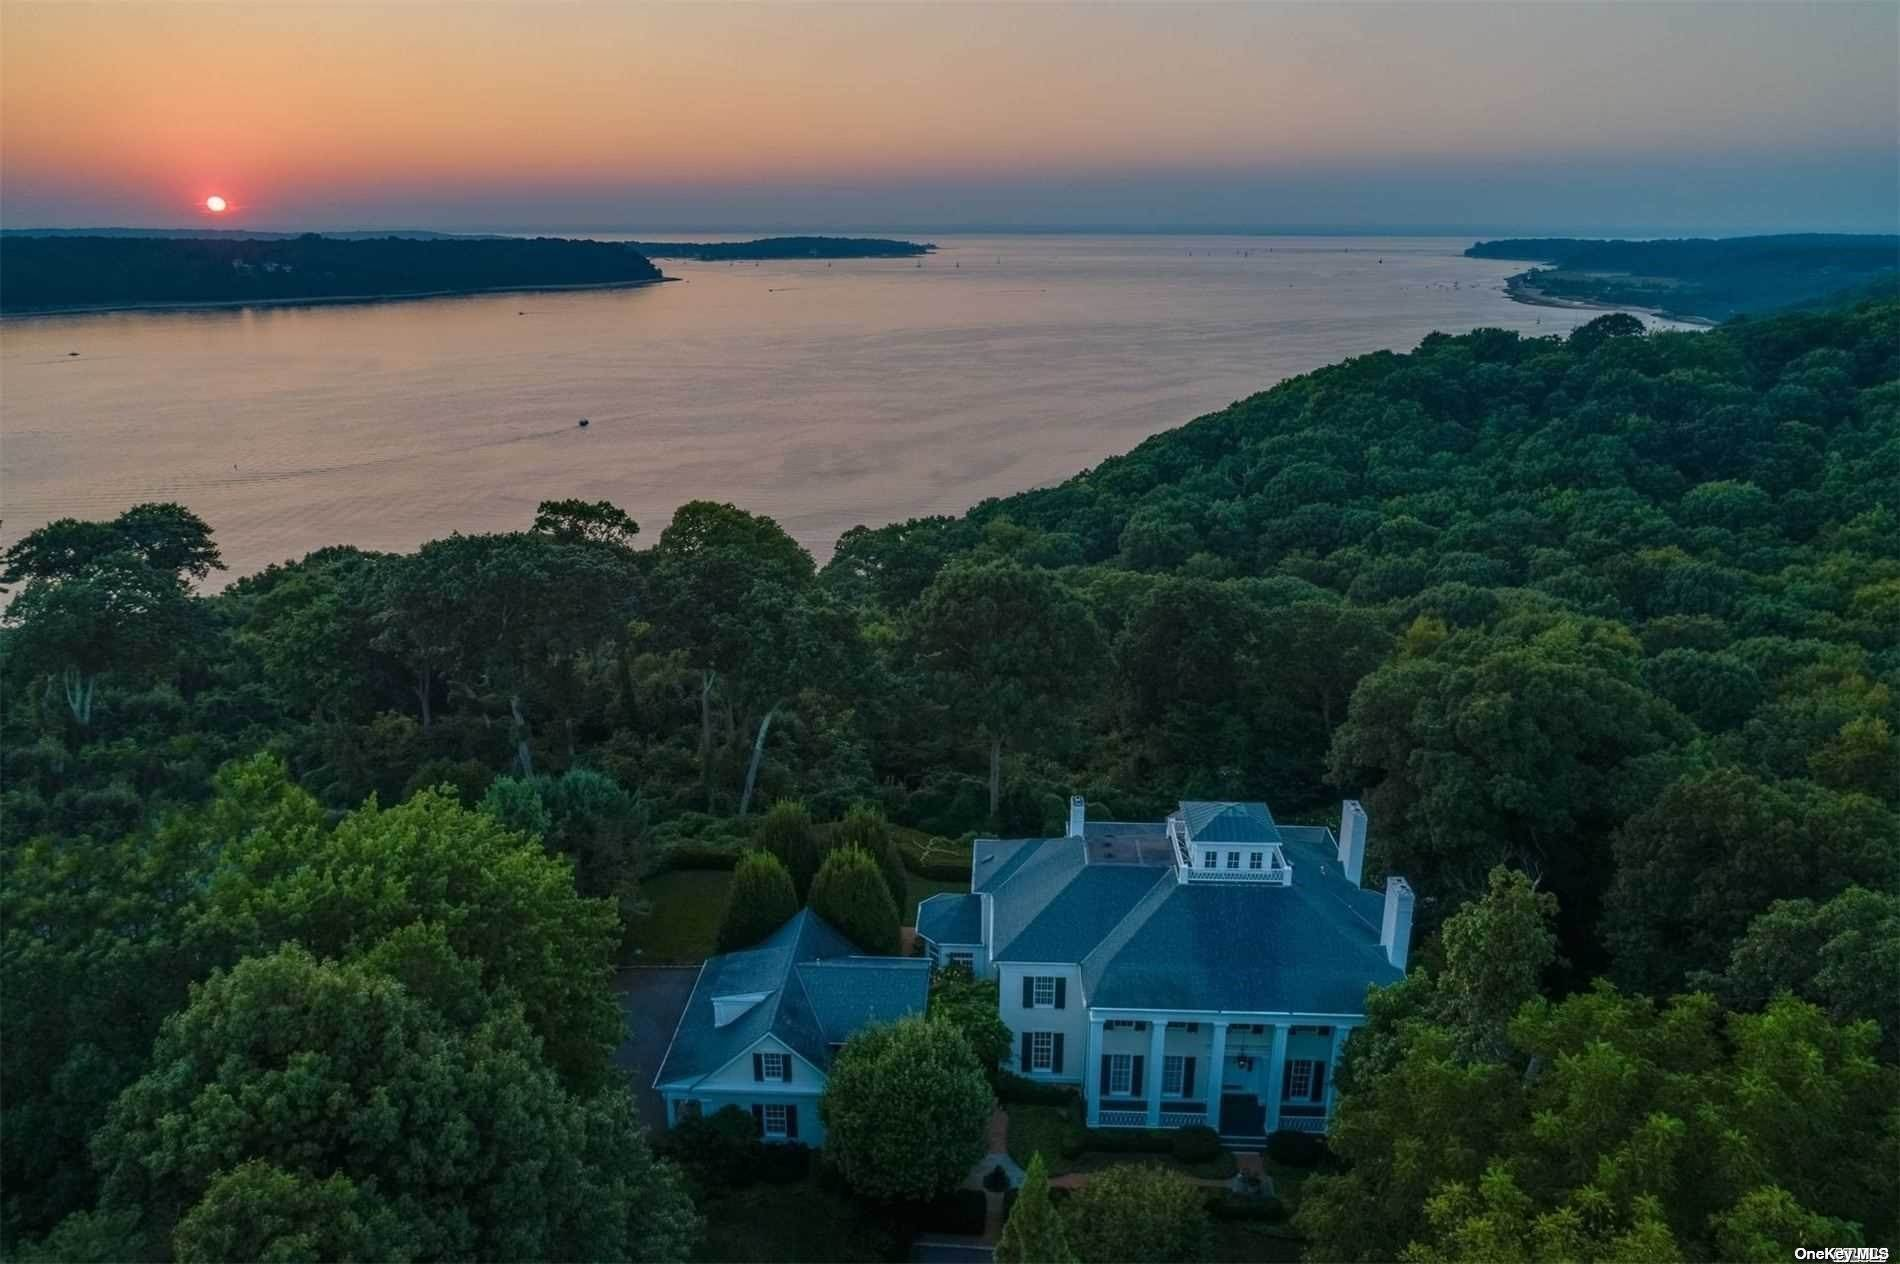 Residential for Sale at 10 Burrwood Court, Cold Spring Hrbr, NY 11724 Cold Spring Harbor, New York 11724 United States